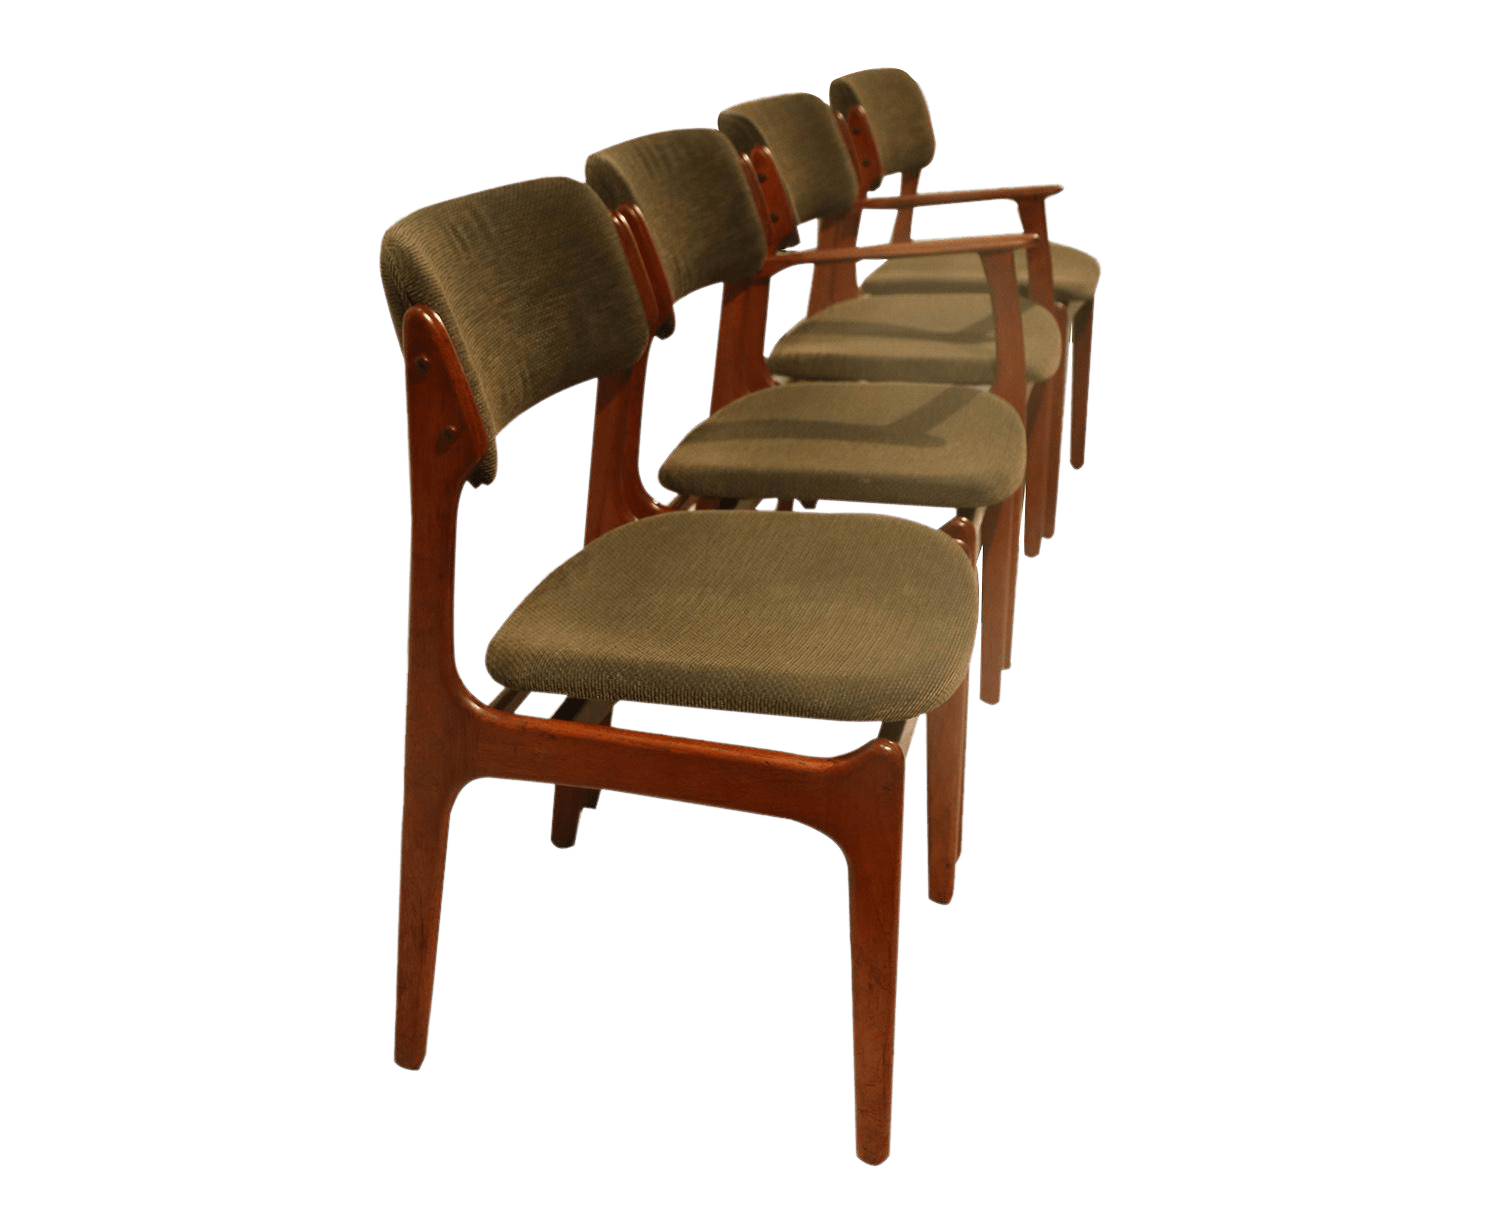 erik buck chairs chair covers singapore gently used buch furniture up to 50 off at chairish for oddense maskinsnedkeri teak dining set of 4